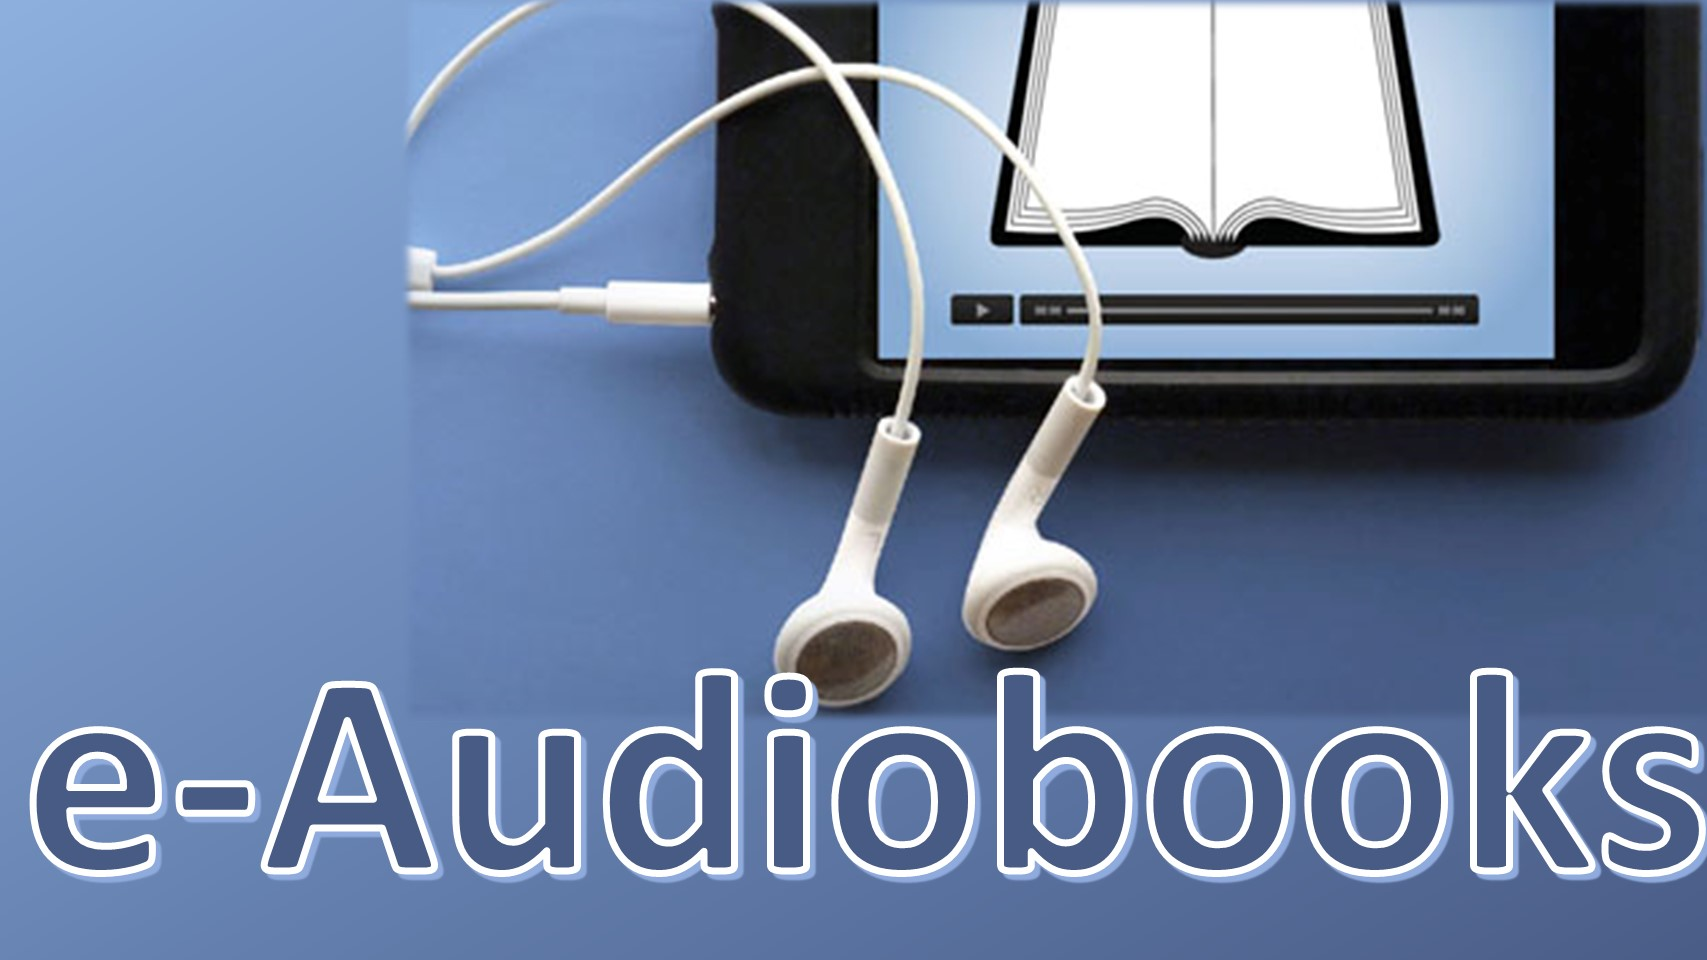 e-Audiobooks decorative picture